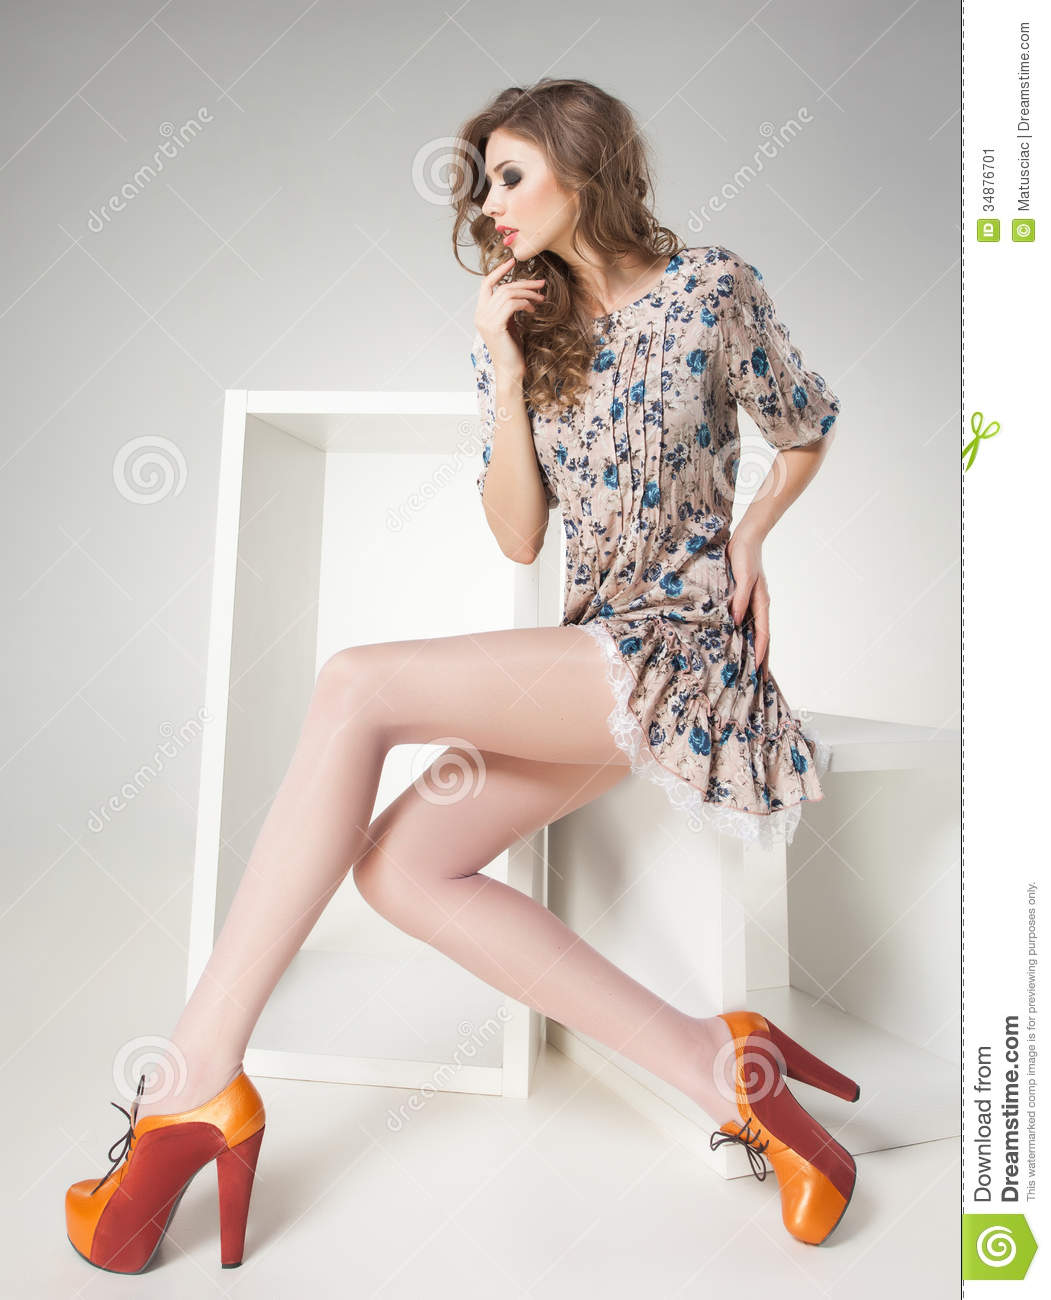 Beautiful woman with long legs in summer dress posing